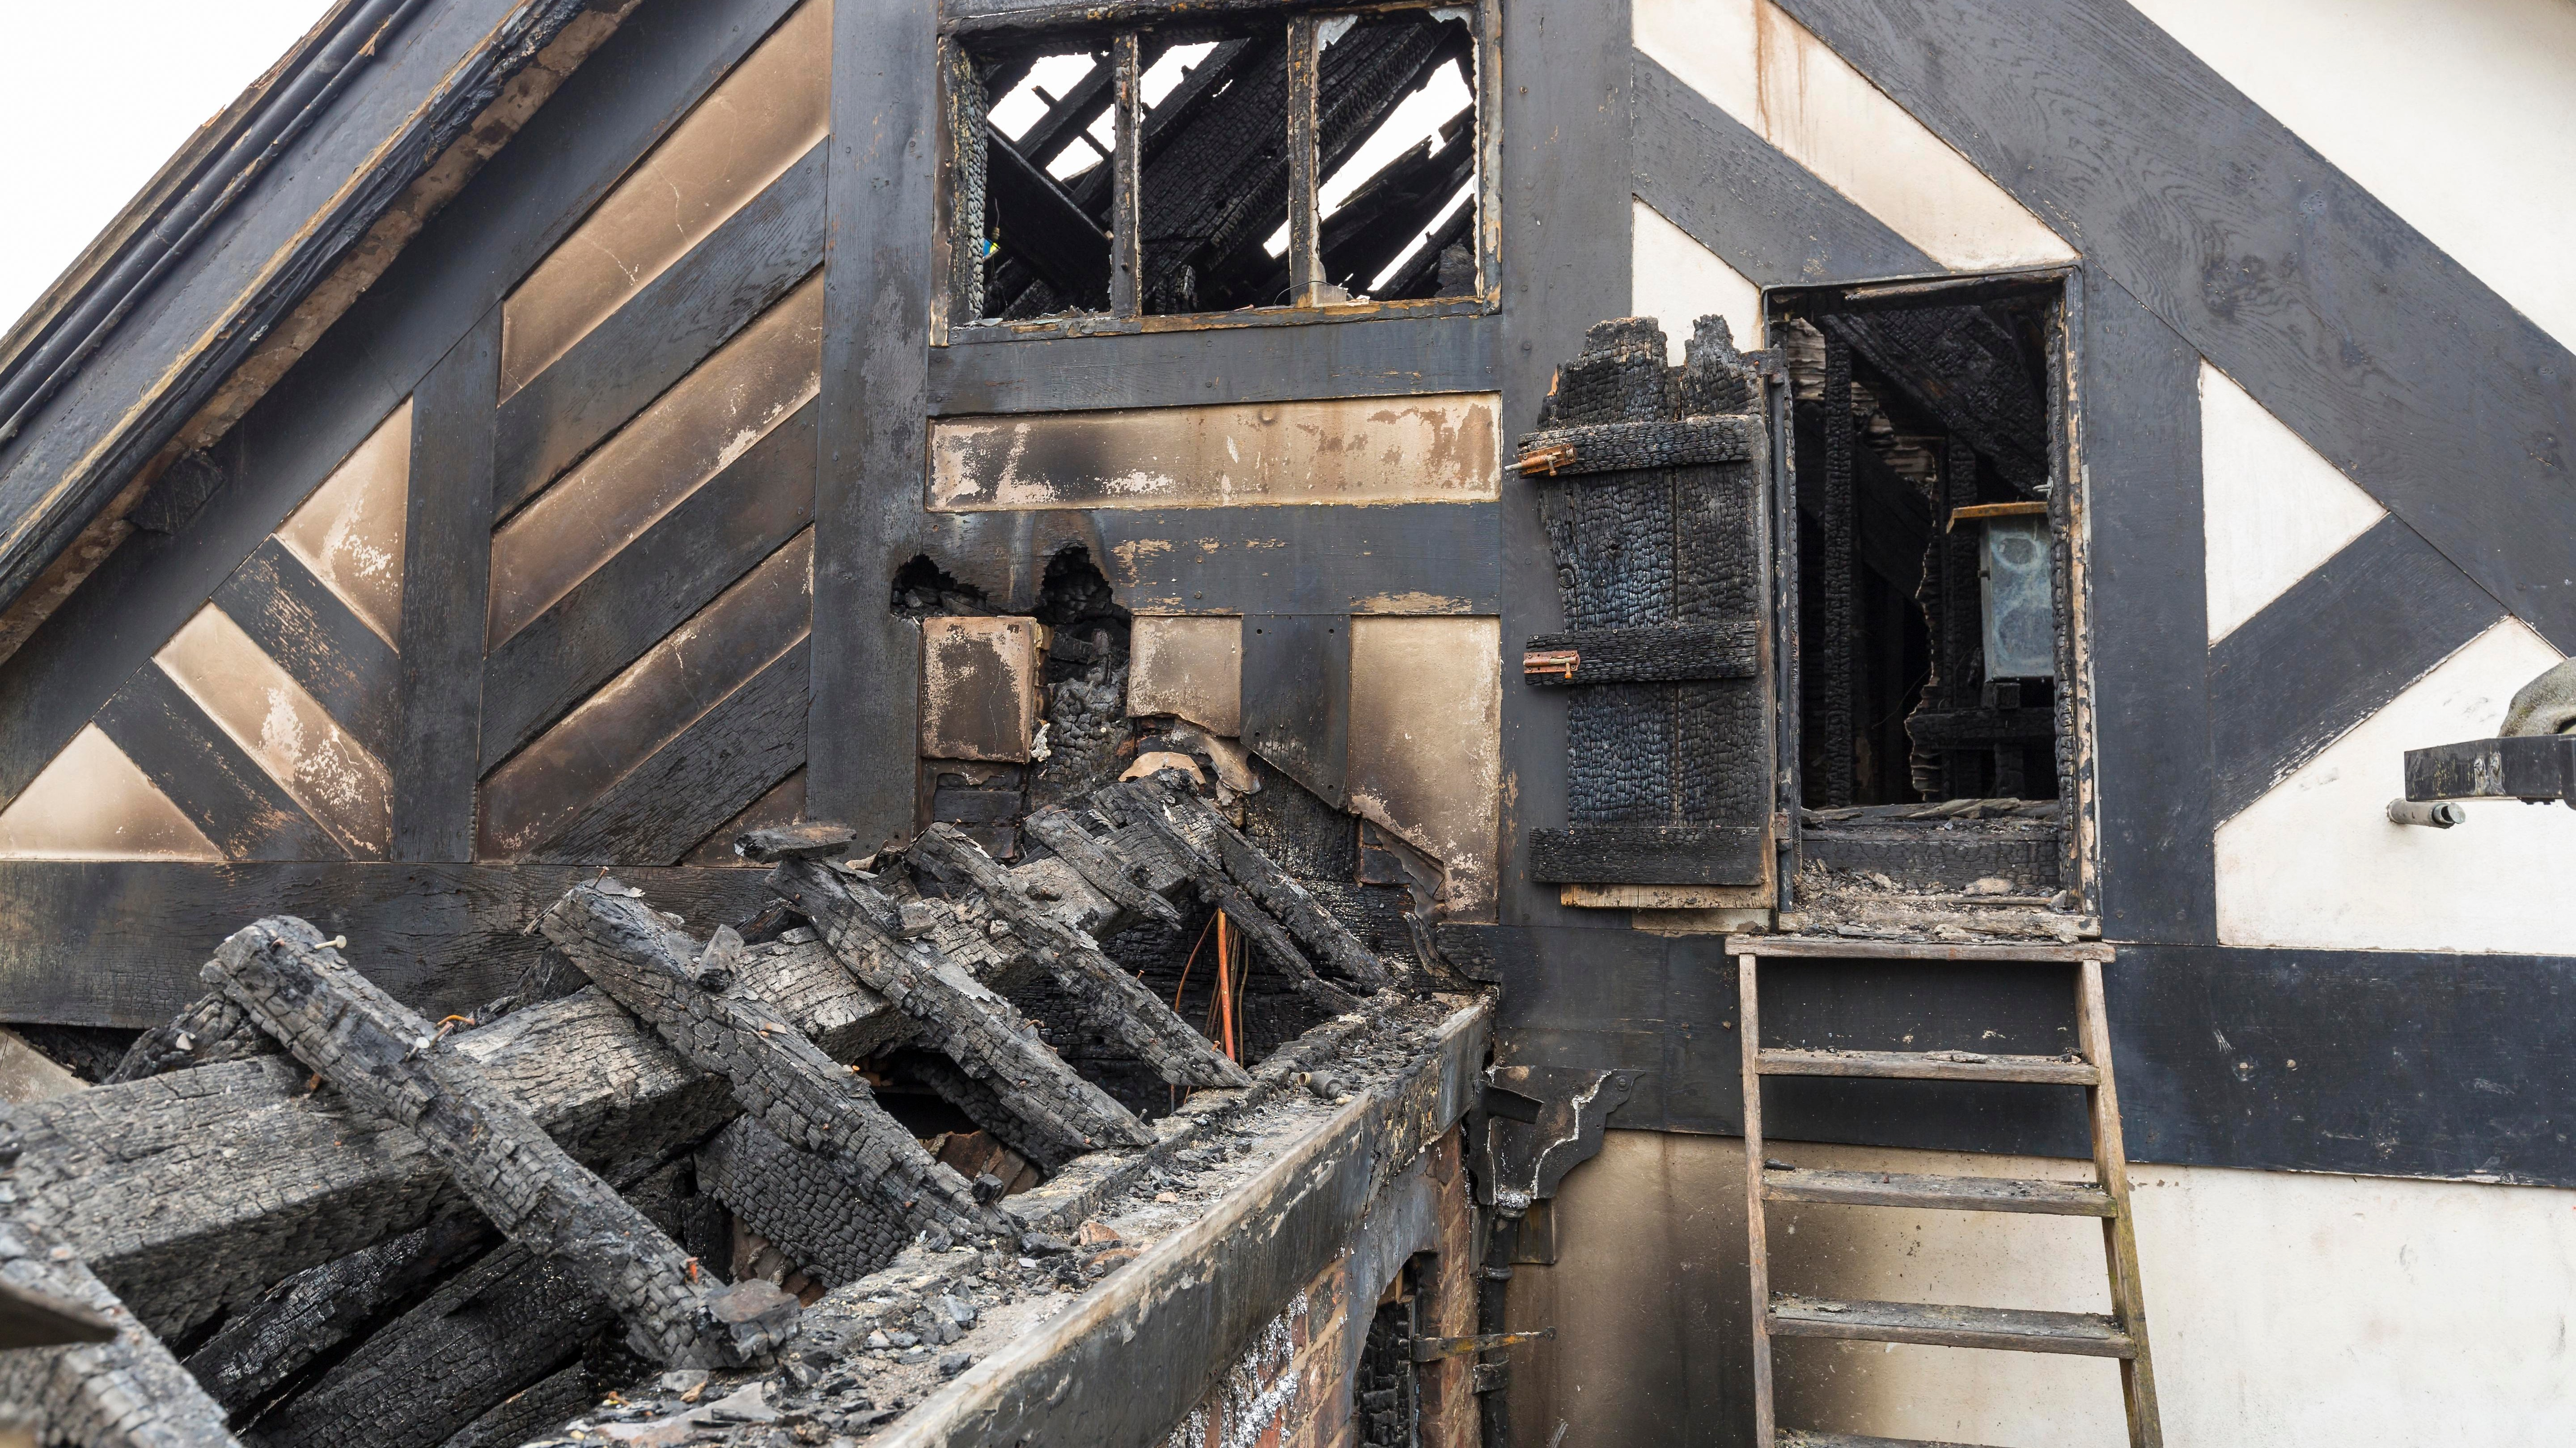 Pictures show damage caused by fire at Wythenshawe Hall ...